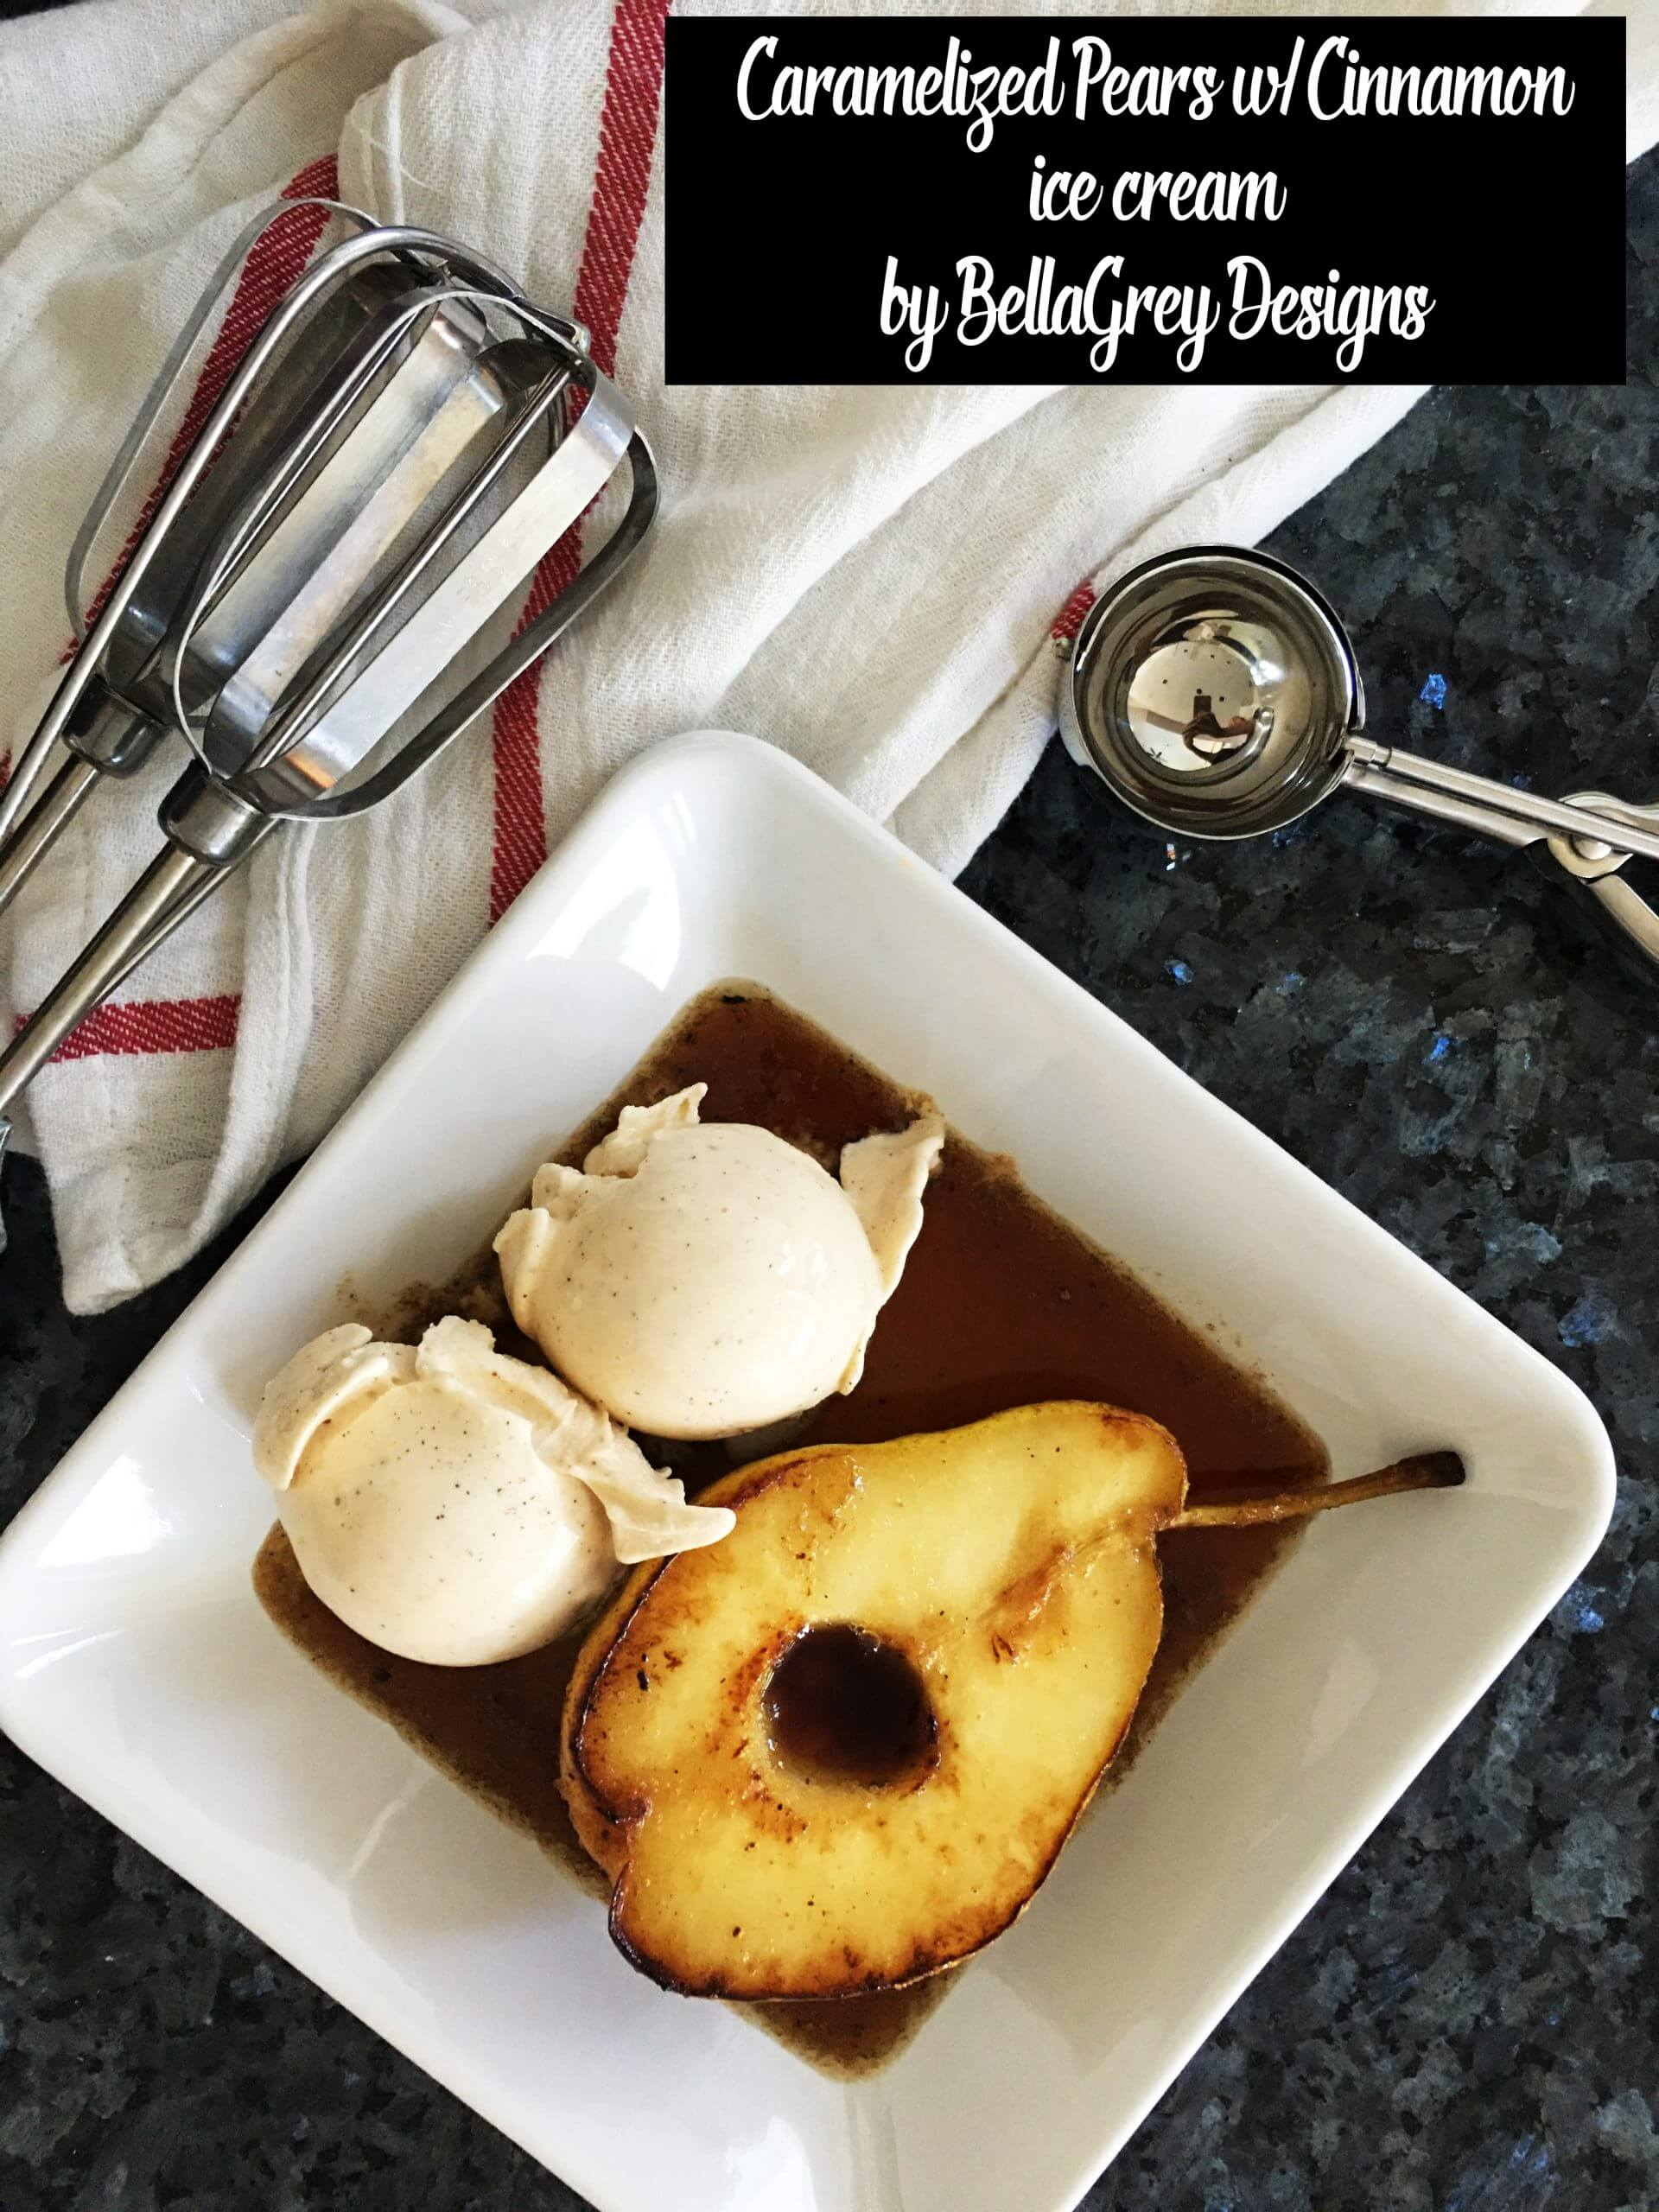 Easy caramelized pears with cinnamon ice cream